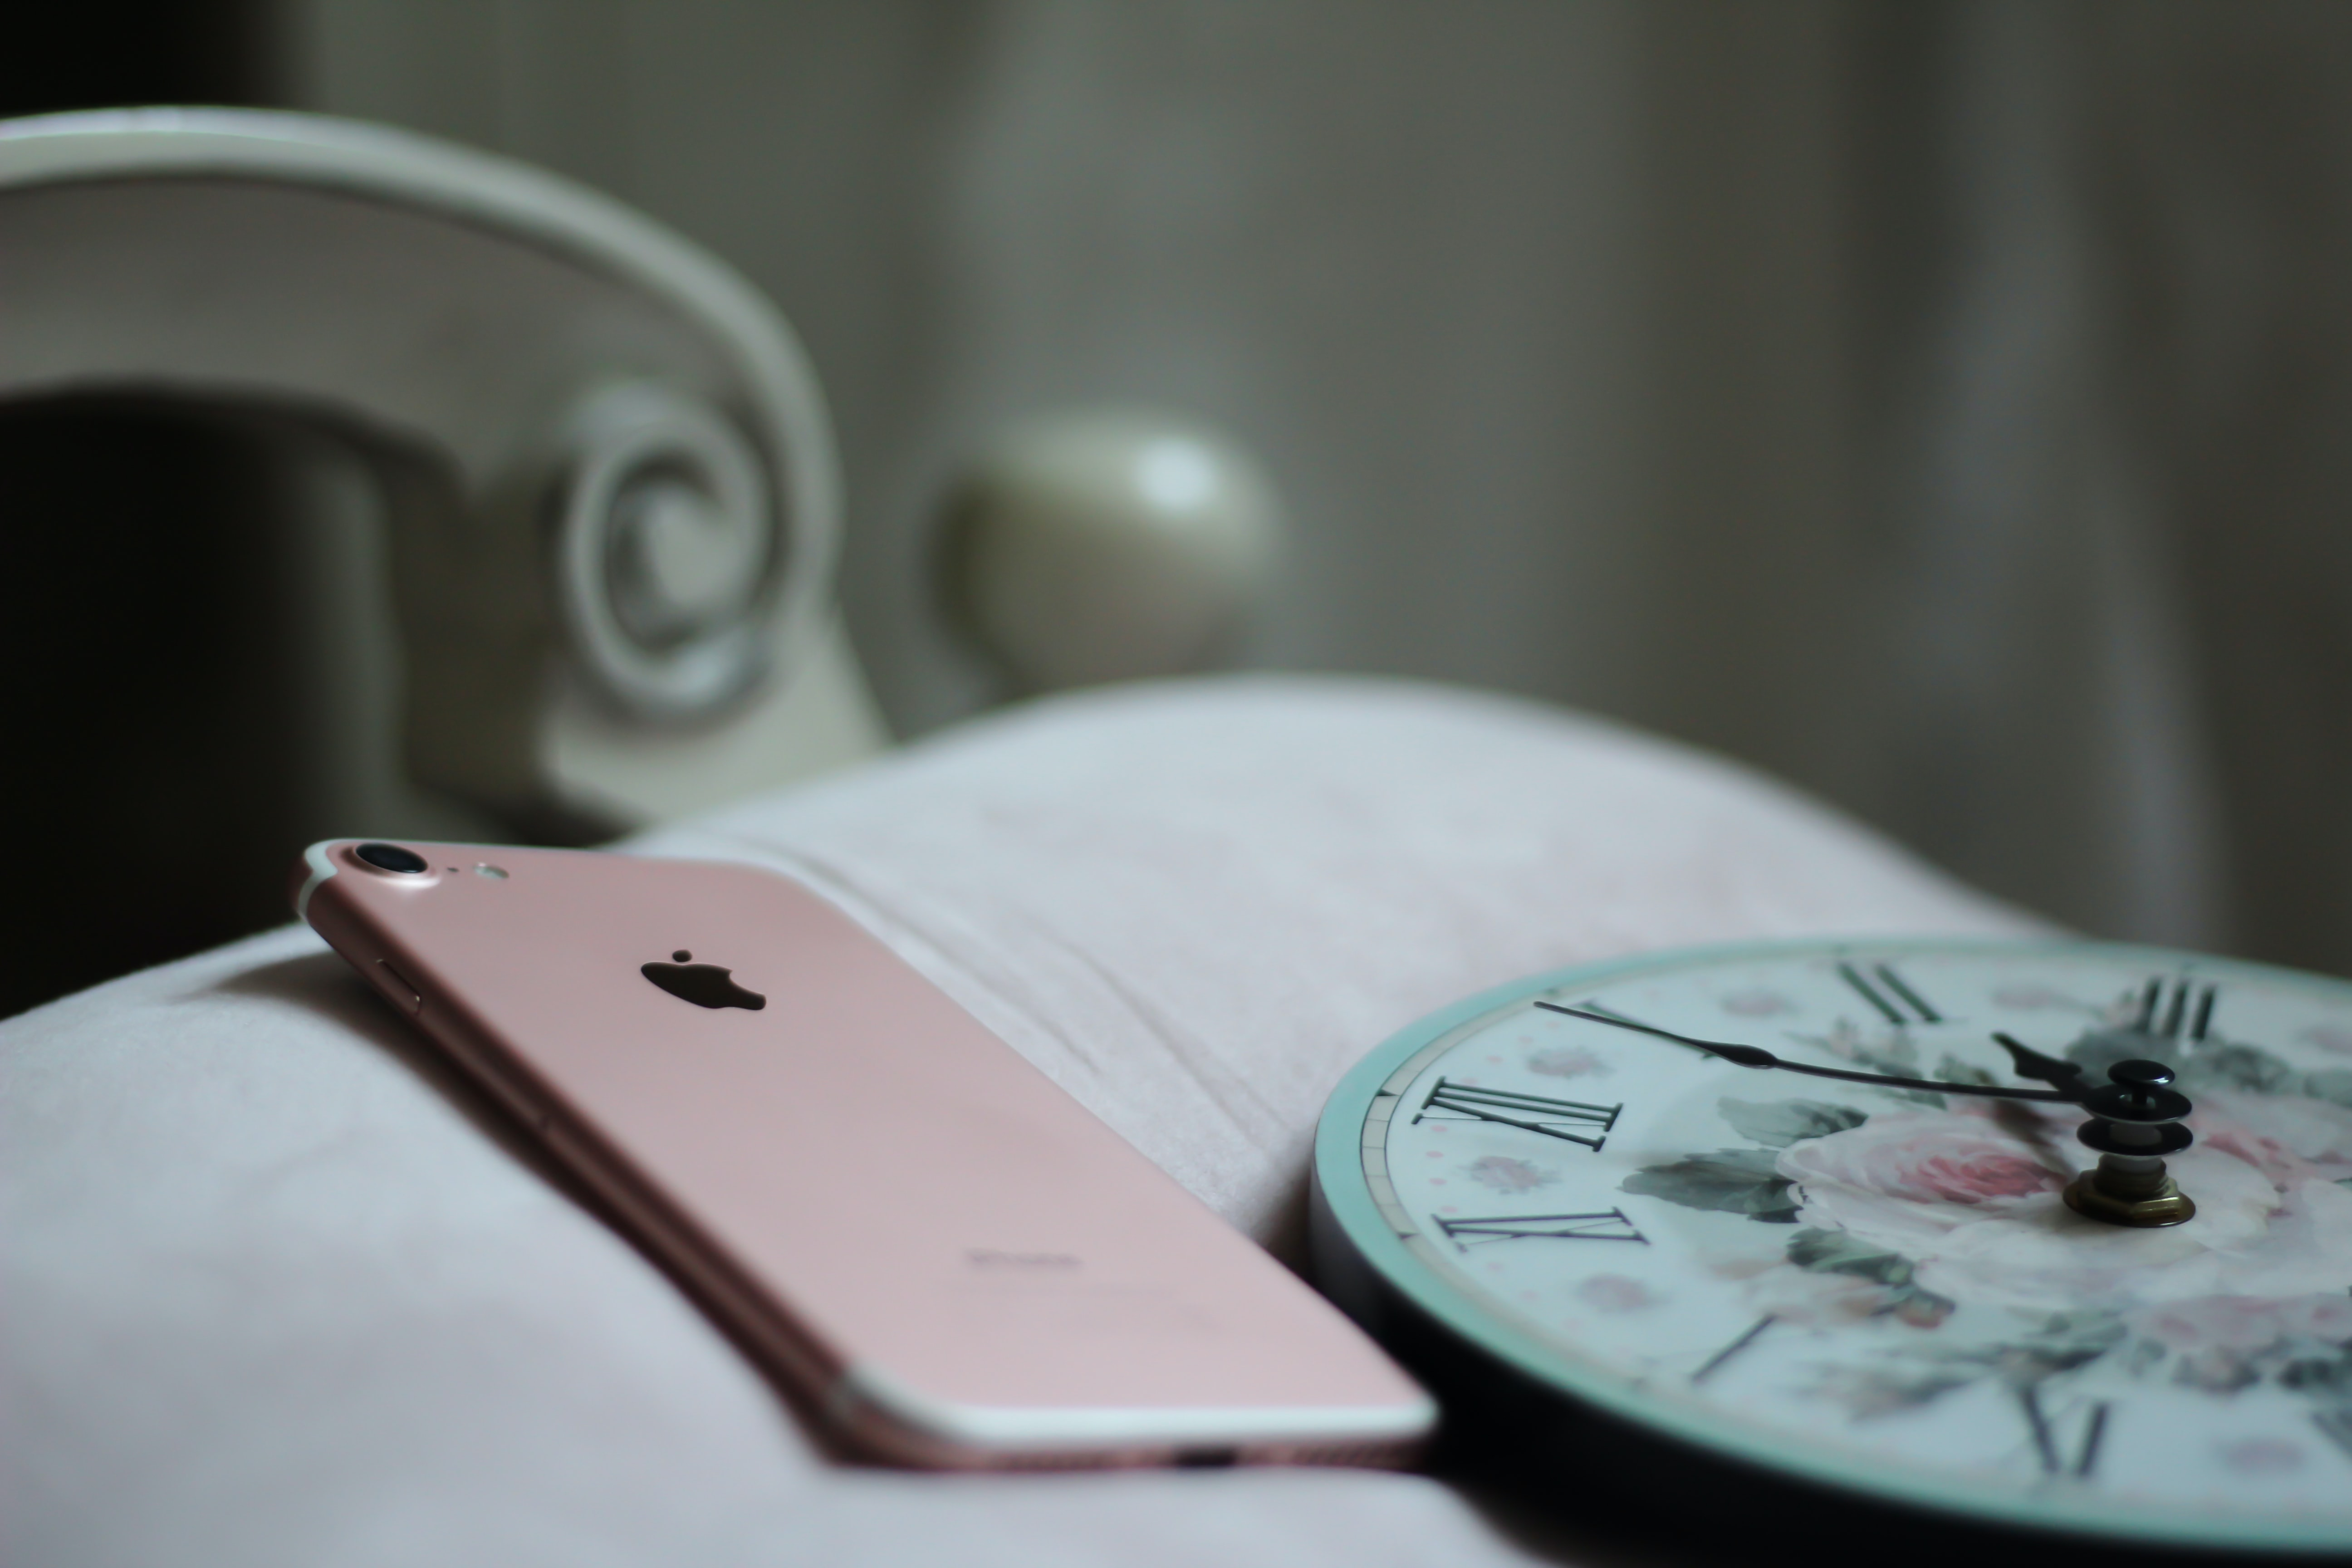 A rose gold iPhone on a pillow next to a clock with a floral pattern